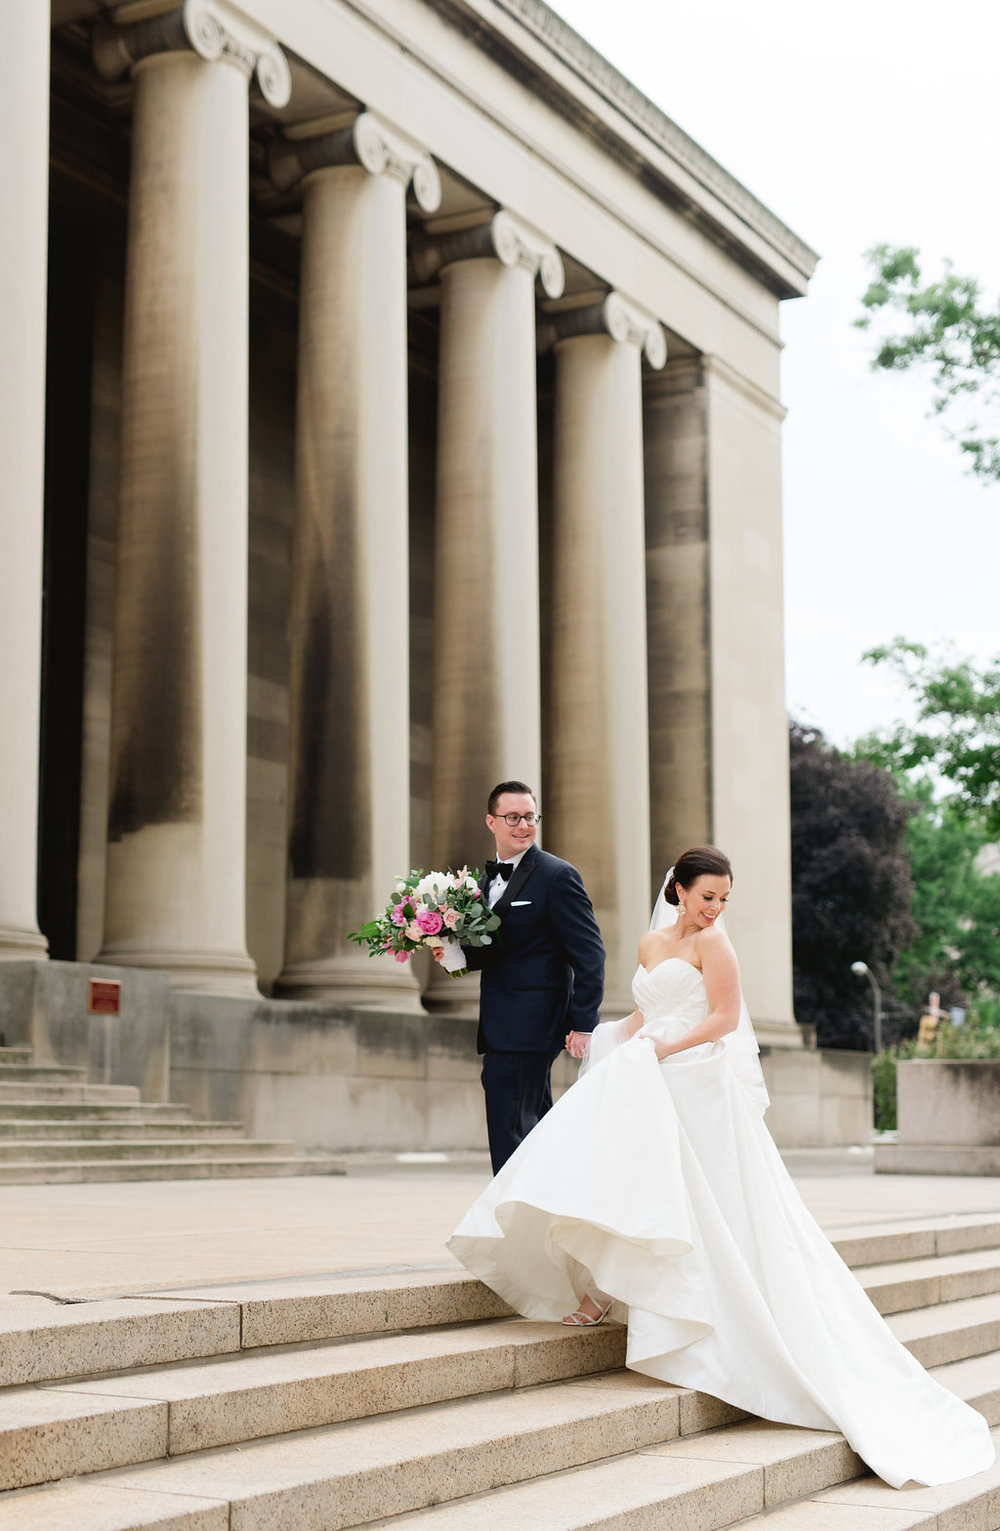 Bride and groom wedding photography Pittsburgh wedding